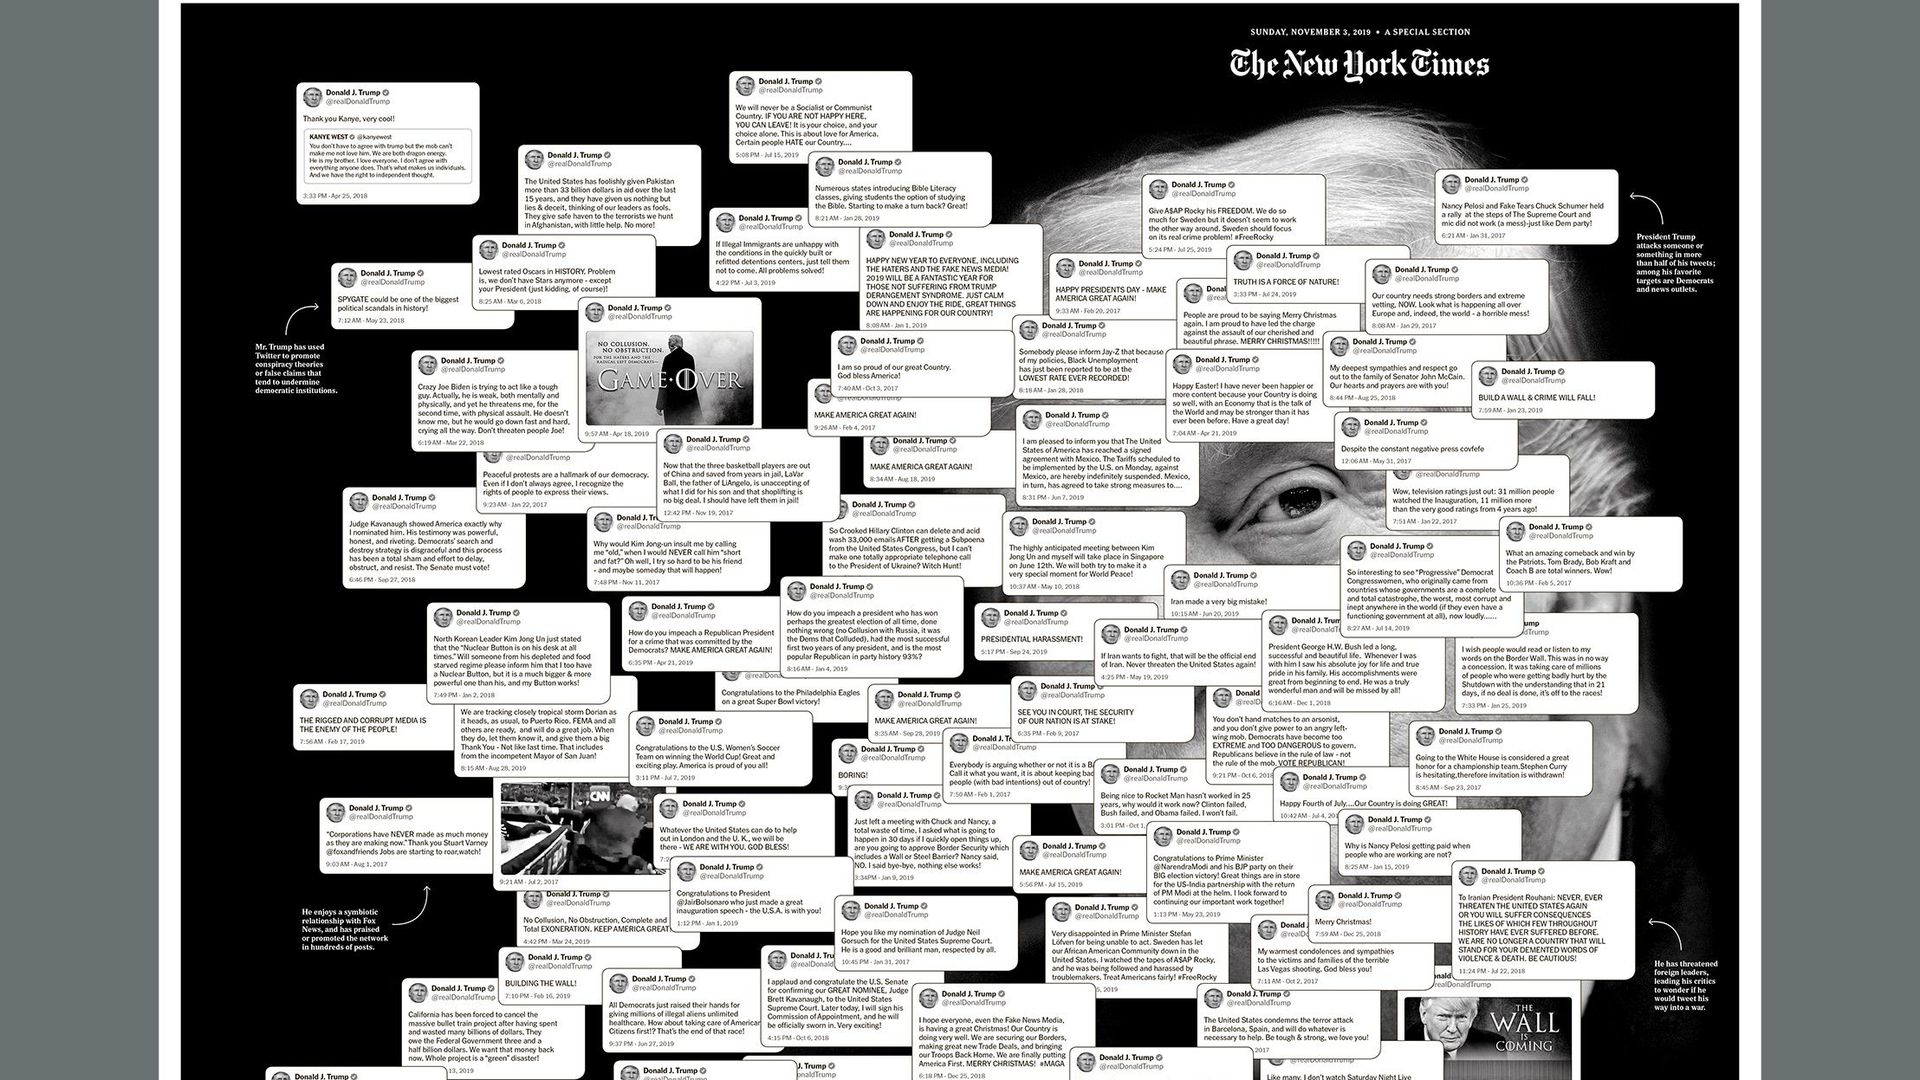 NYT graphic of Trump's tweets